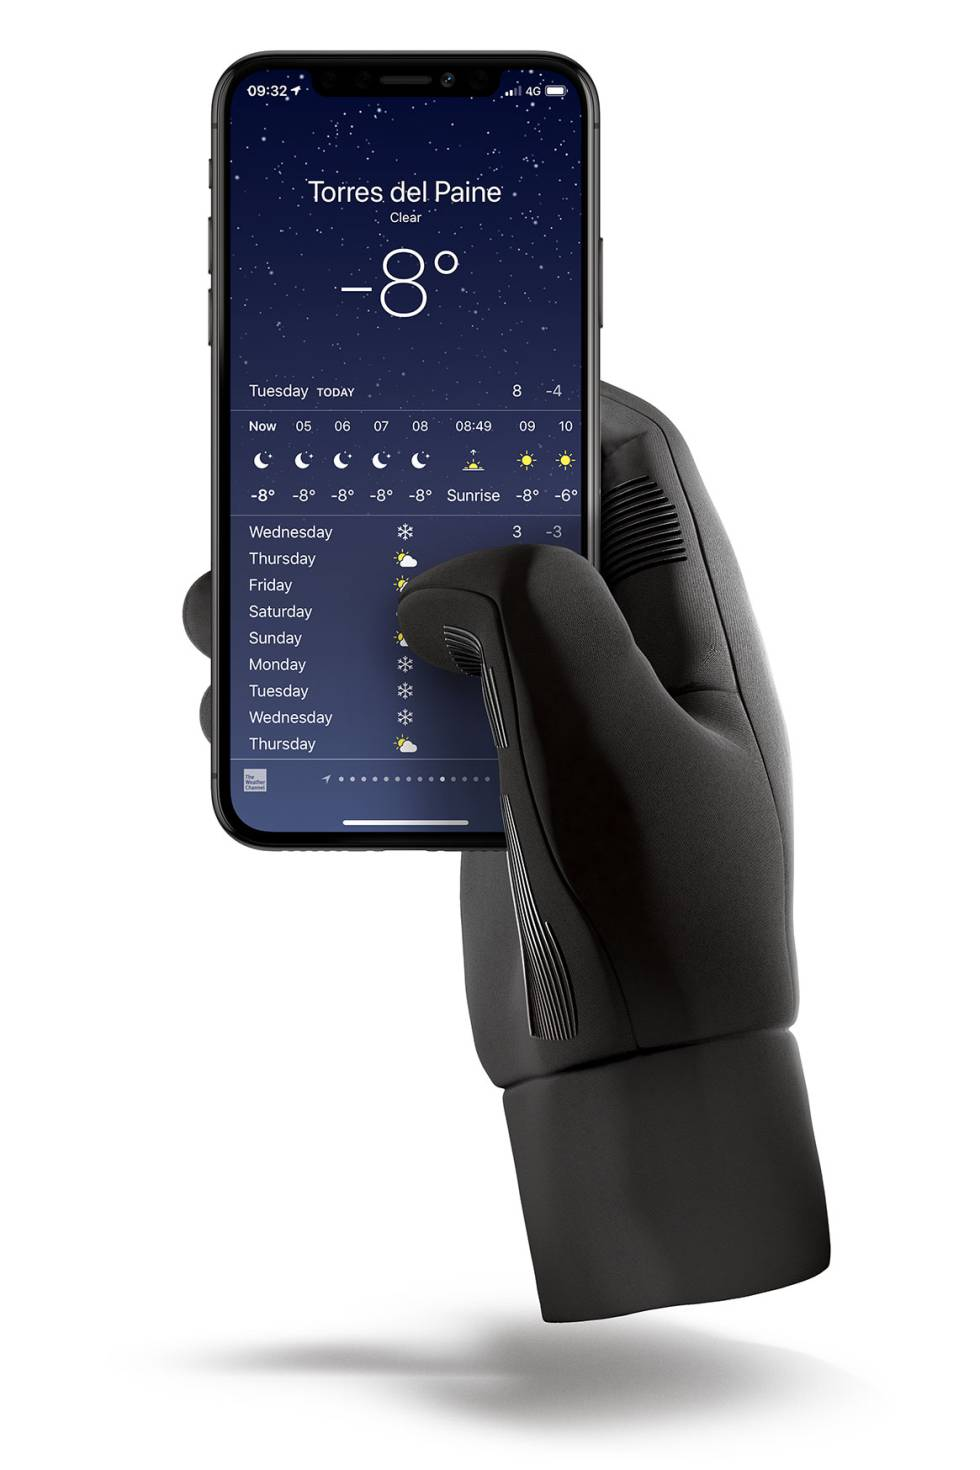 Seven technological devices to avoid freezing cold with the storm Filomena